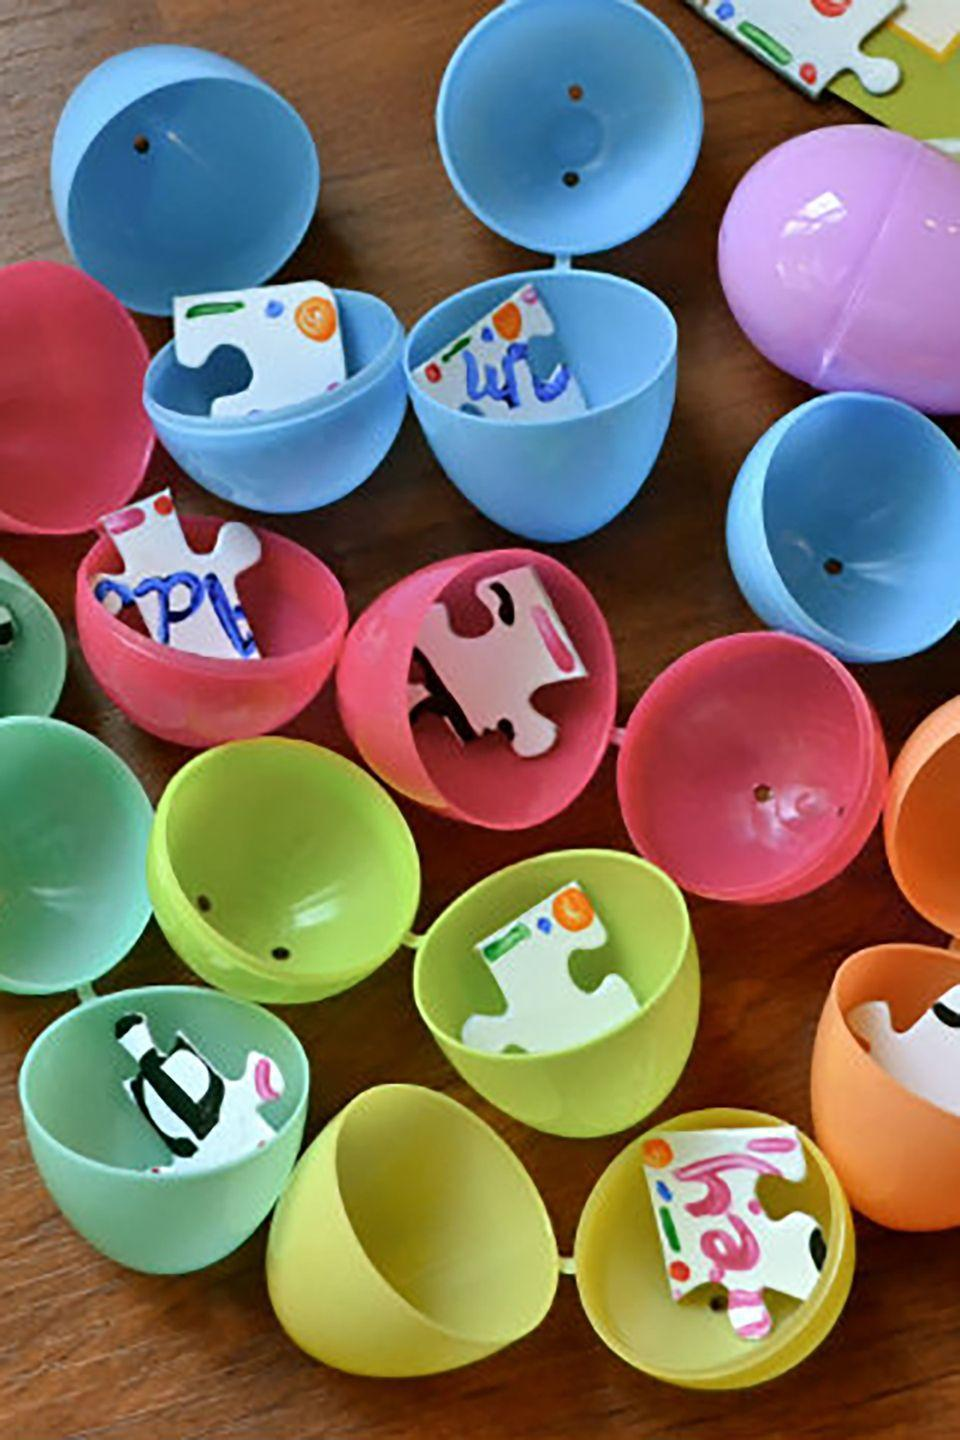 """<p>With a set of blank puzzle pieces, create your own design or message for your kids to piece together after the big hunt.</p><p><strong>Get the tutorial at <a href=""""http://makethebestofeverything.com/2013/02/puzzle-easter-egg-hunt.html"""" rel=""""nofollow noopener"""" target=""""_blank"""" data-ylk=""""slk:Make The Best Of Everything"""" class=""""link rapid-noclick-resp"""">Make The Best Of Everything</a>.</strong></p><p><strong><a class=""""link rapid-noclick-resp"""" href=""""https://www.amazon.com/Pack-Easter-Hinged-Fillable-Polly/dp/B07NWYY5KY/ref=sr_1_8?dchild=1&keywords=easter+eggs&qid=1614113230&sr=8-8&tag=syn-yahoo-20&ascsubtag=%5Bartid%7C10050.g.4083%5Bsrc%7Cyahoo-us"""" rel=""""nofollow noopener"""" target=""""_blank"""" data-ylk=""""slk:SHOP EASTER EGGS"""">SHOP EASTER EGGS</a><br></strong></p>"""